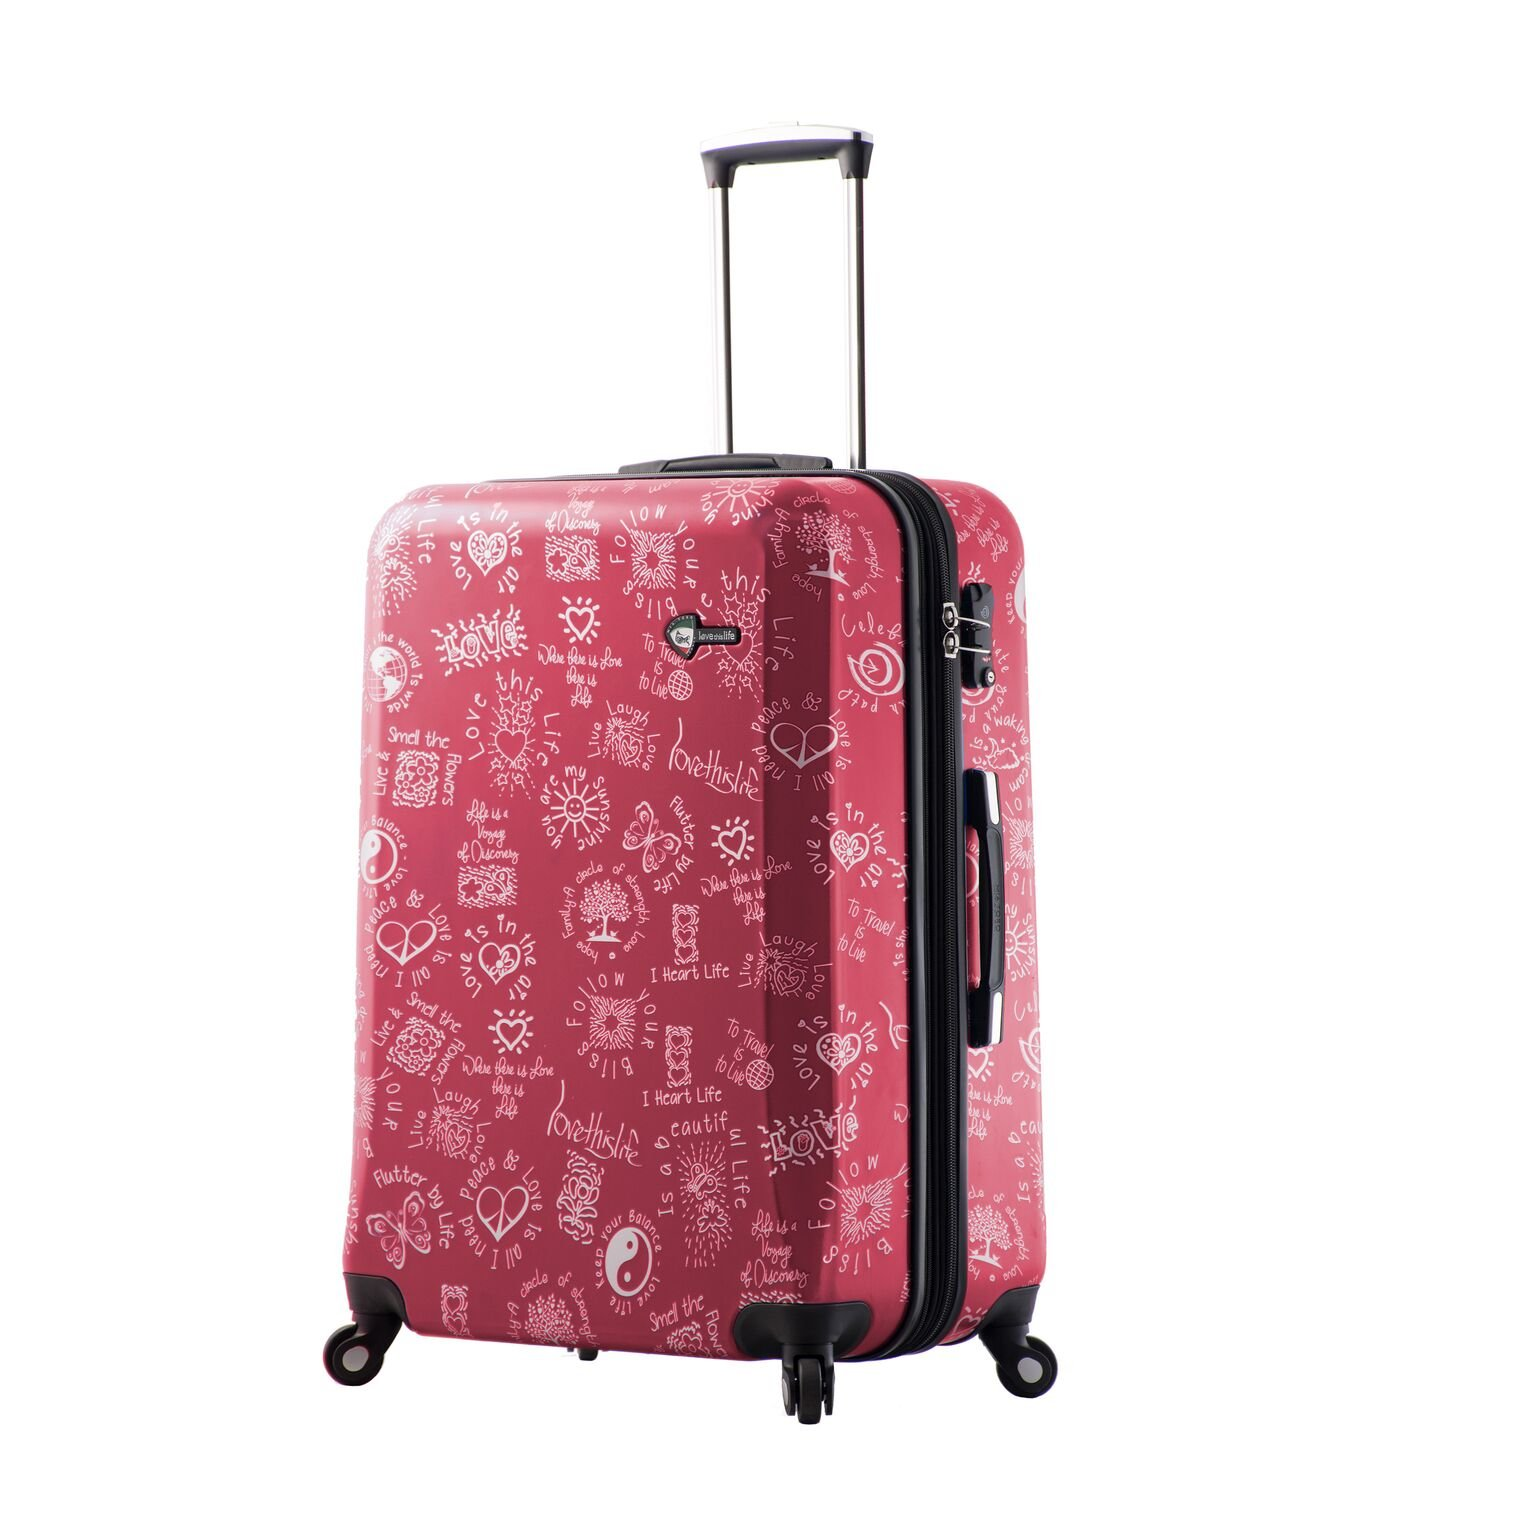 Mia Toro M1089-28in-Red Love This Life-Medallions Hardside 28 Inch Spinner, Red